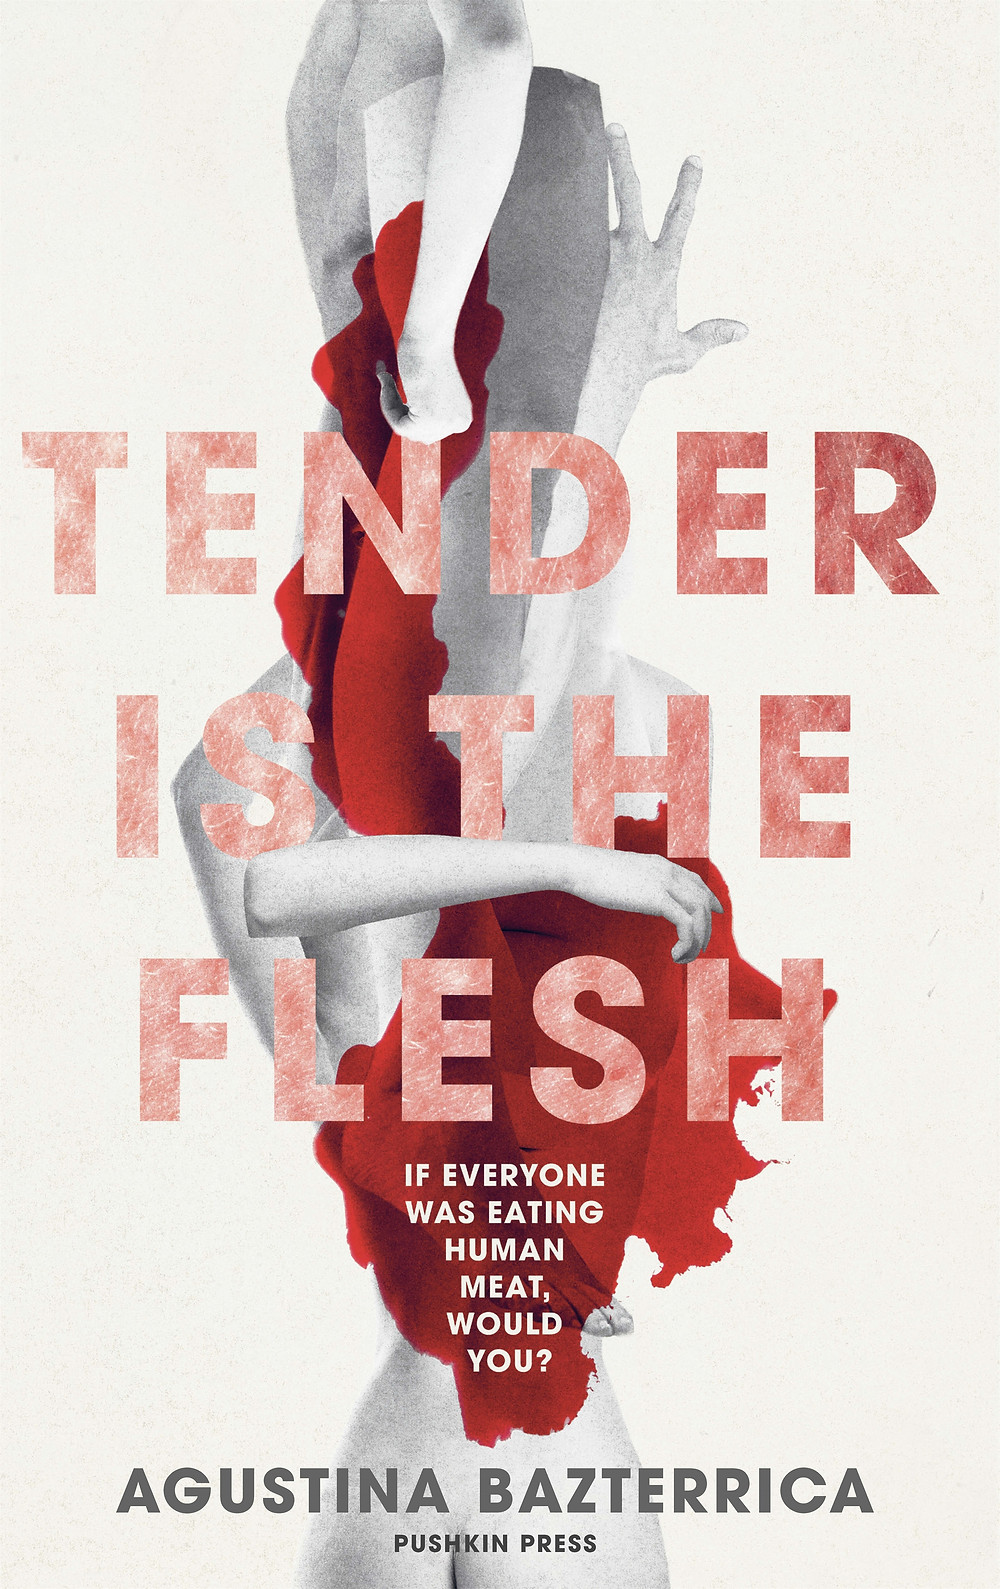 """Tender Is the Flesh Agustina Bazterrica (Author)  Sarah Moses (Translator) Pushkin Press thebookslut book reviews. The Book Slut. Working at the local processing plant, Marcos is in the business of slaughtering humans--though no one calls them that anymore. His wife has left him, his father is sinking into dementia, and Marcos tries not to think too hard about how he makes a living. After all, it happened so quickly. First, it was reported that an infectious virus has made all animal meat poisonous to humans. Then governments initiated the """"Transition."""" Now, eating human meat--""""special meat""""--is legal. Marcos tries to stick to numbers, consignments, processing. Then one day he's given a gift: a live specimen of the finest quality. Though he's aware that any form of personal contact is forbidden on pain of death, little by little he starts to treat her like a human being. And soon, he becomes tortured by what has been lost--and what might still be saved. Product Details Price $16.00  $14.72 Publisher Scribner Book Company Publish Date August 04, 2020 Pages 224 Dimensions 5.4 X 0.7 X 8.3 inches 